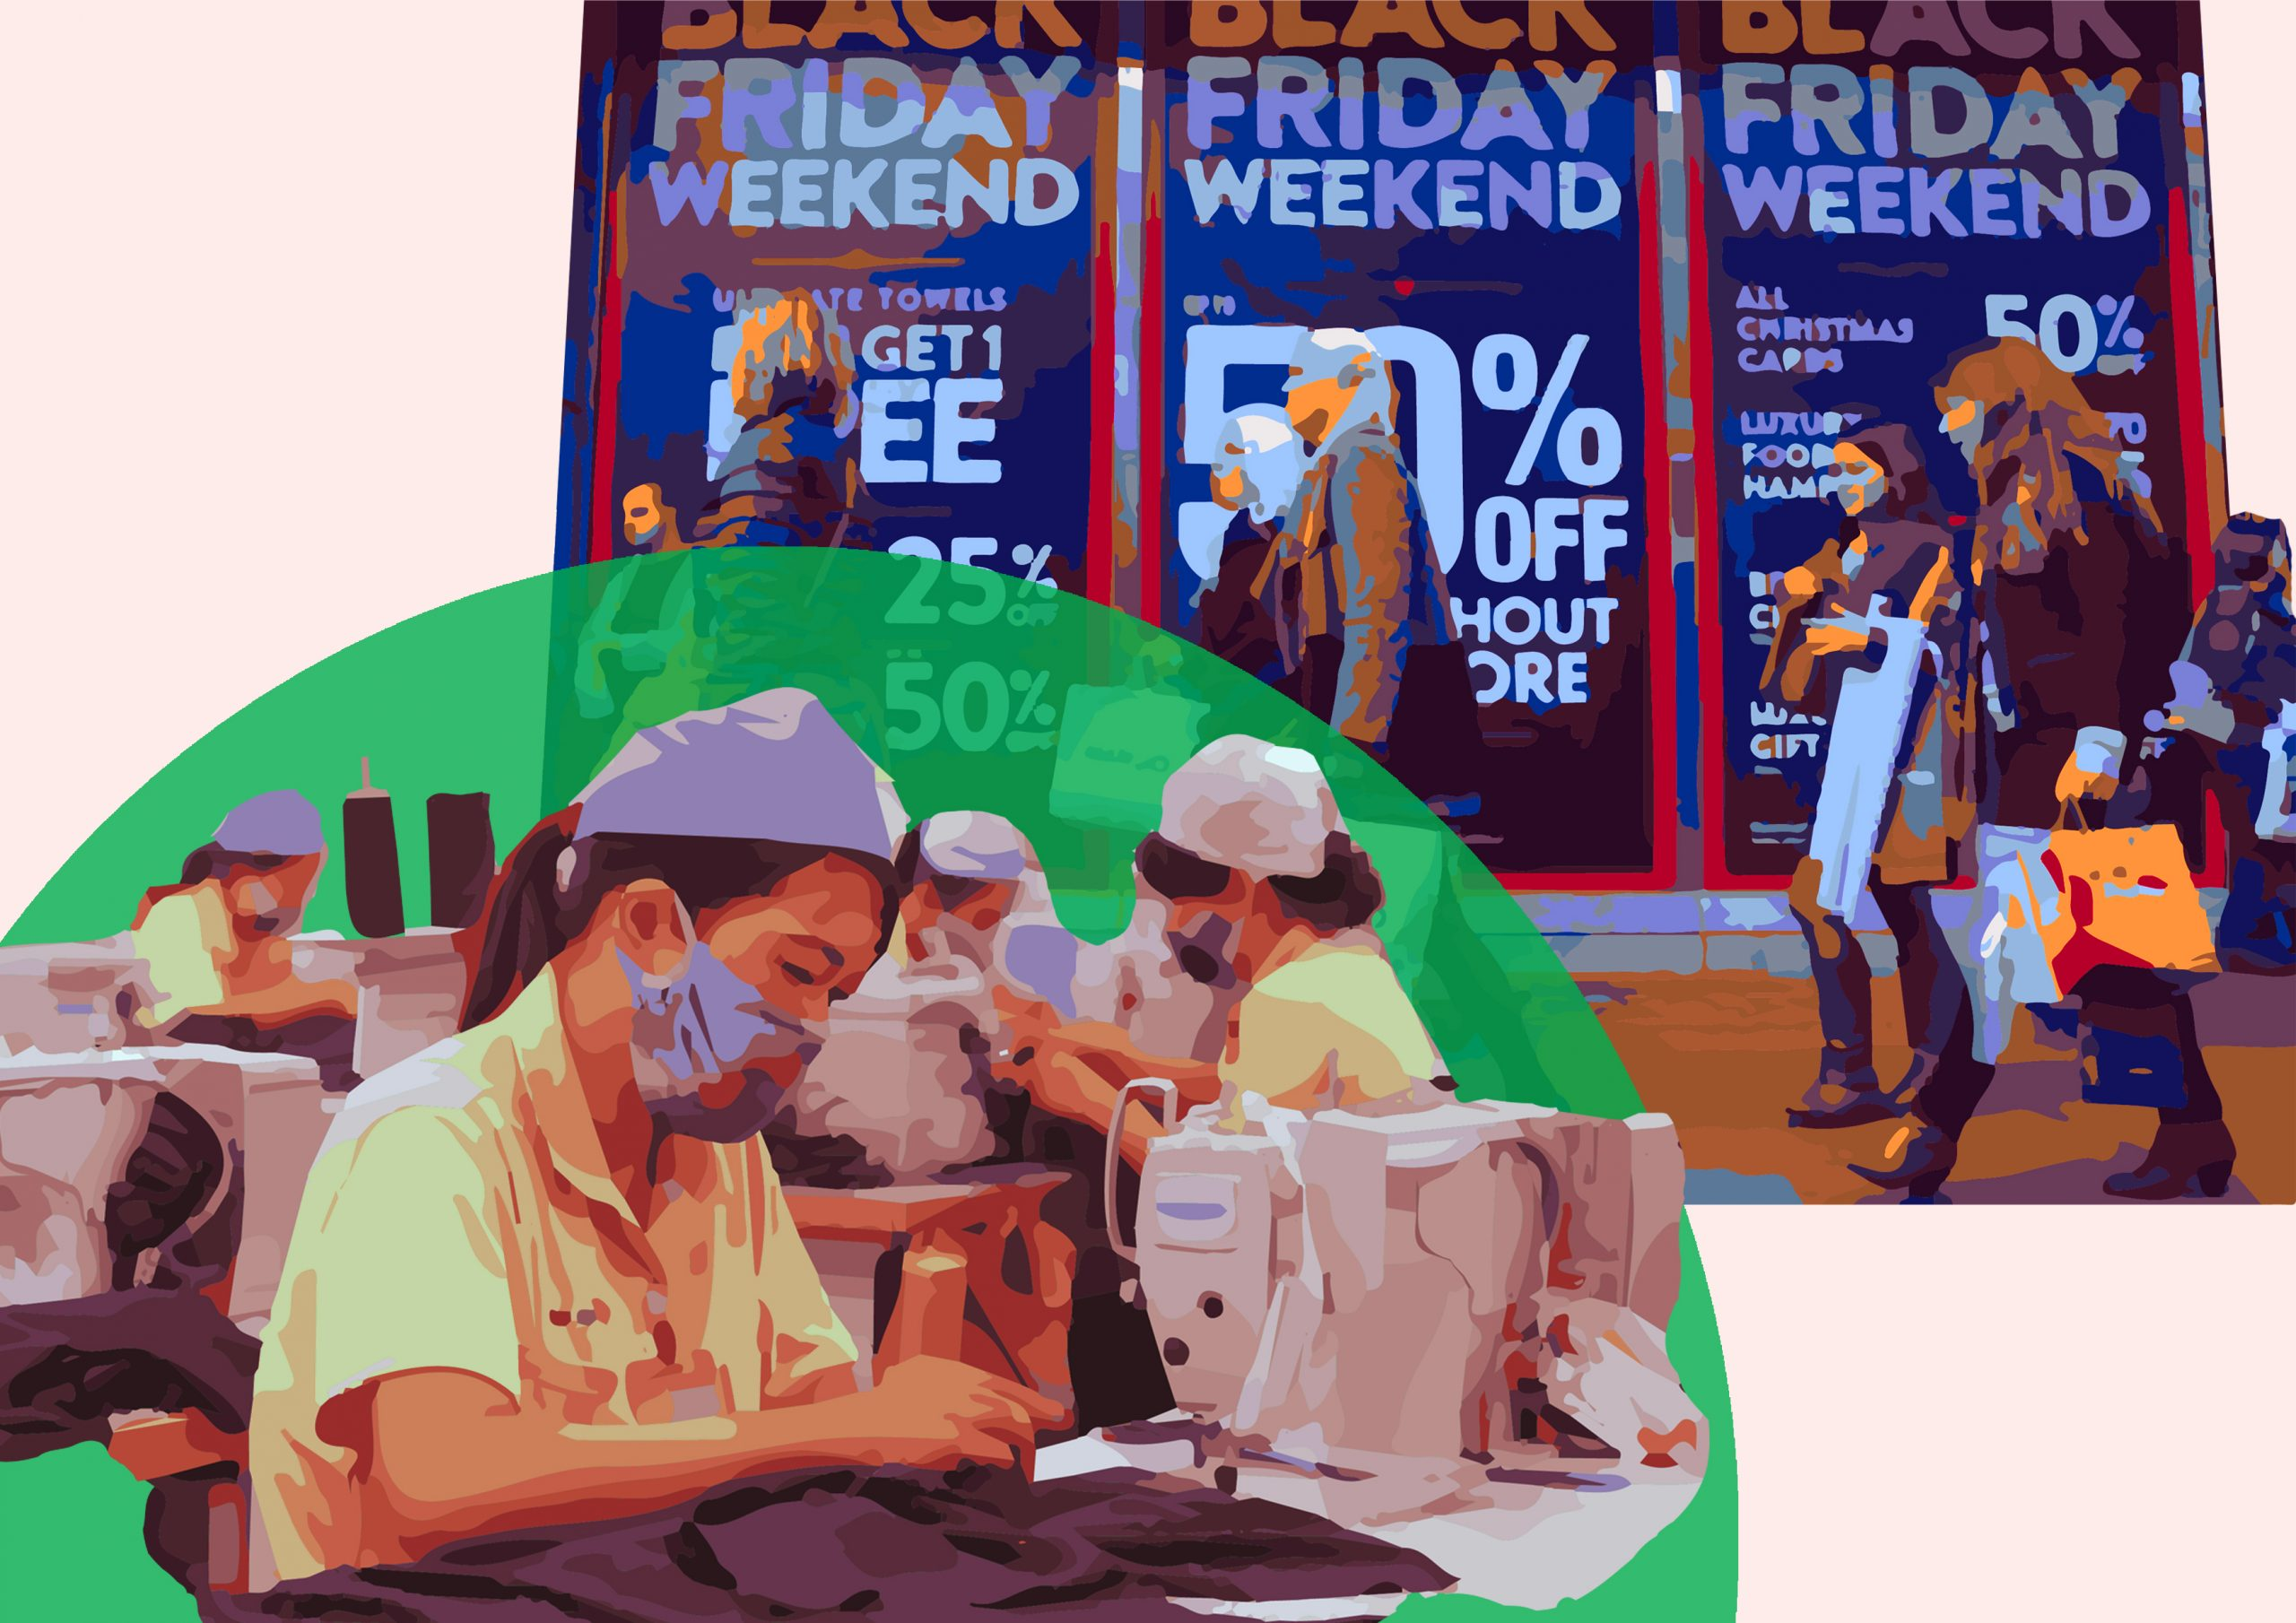 Factory workers sewing clothes in contrast to consumers buying clothing on Black Friday